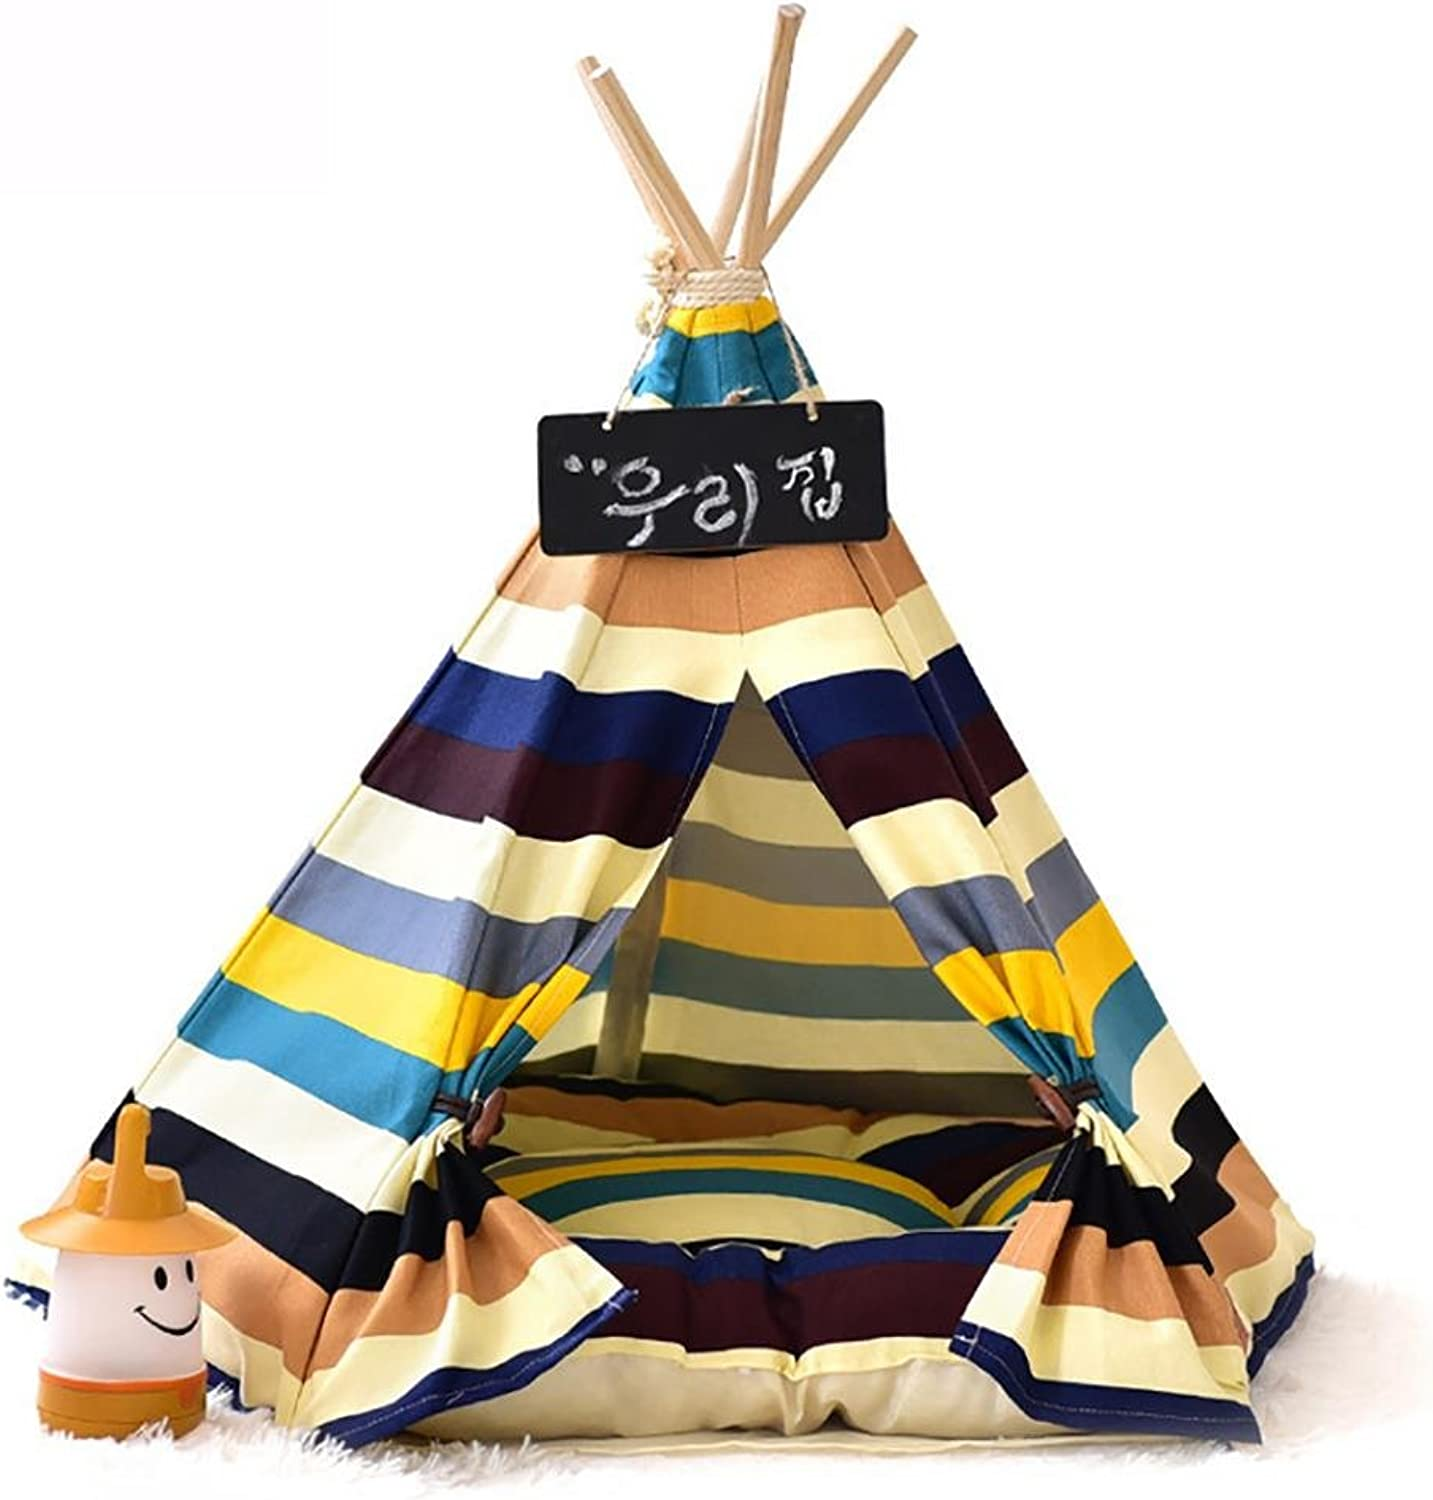 DIAMO Pet Teepee Dog(Puppy) & Cat Bed,Portable Pet Tents & Houses for Dog(Puppy) & Cat colorful Style with cushion